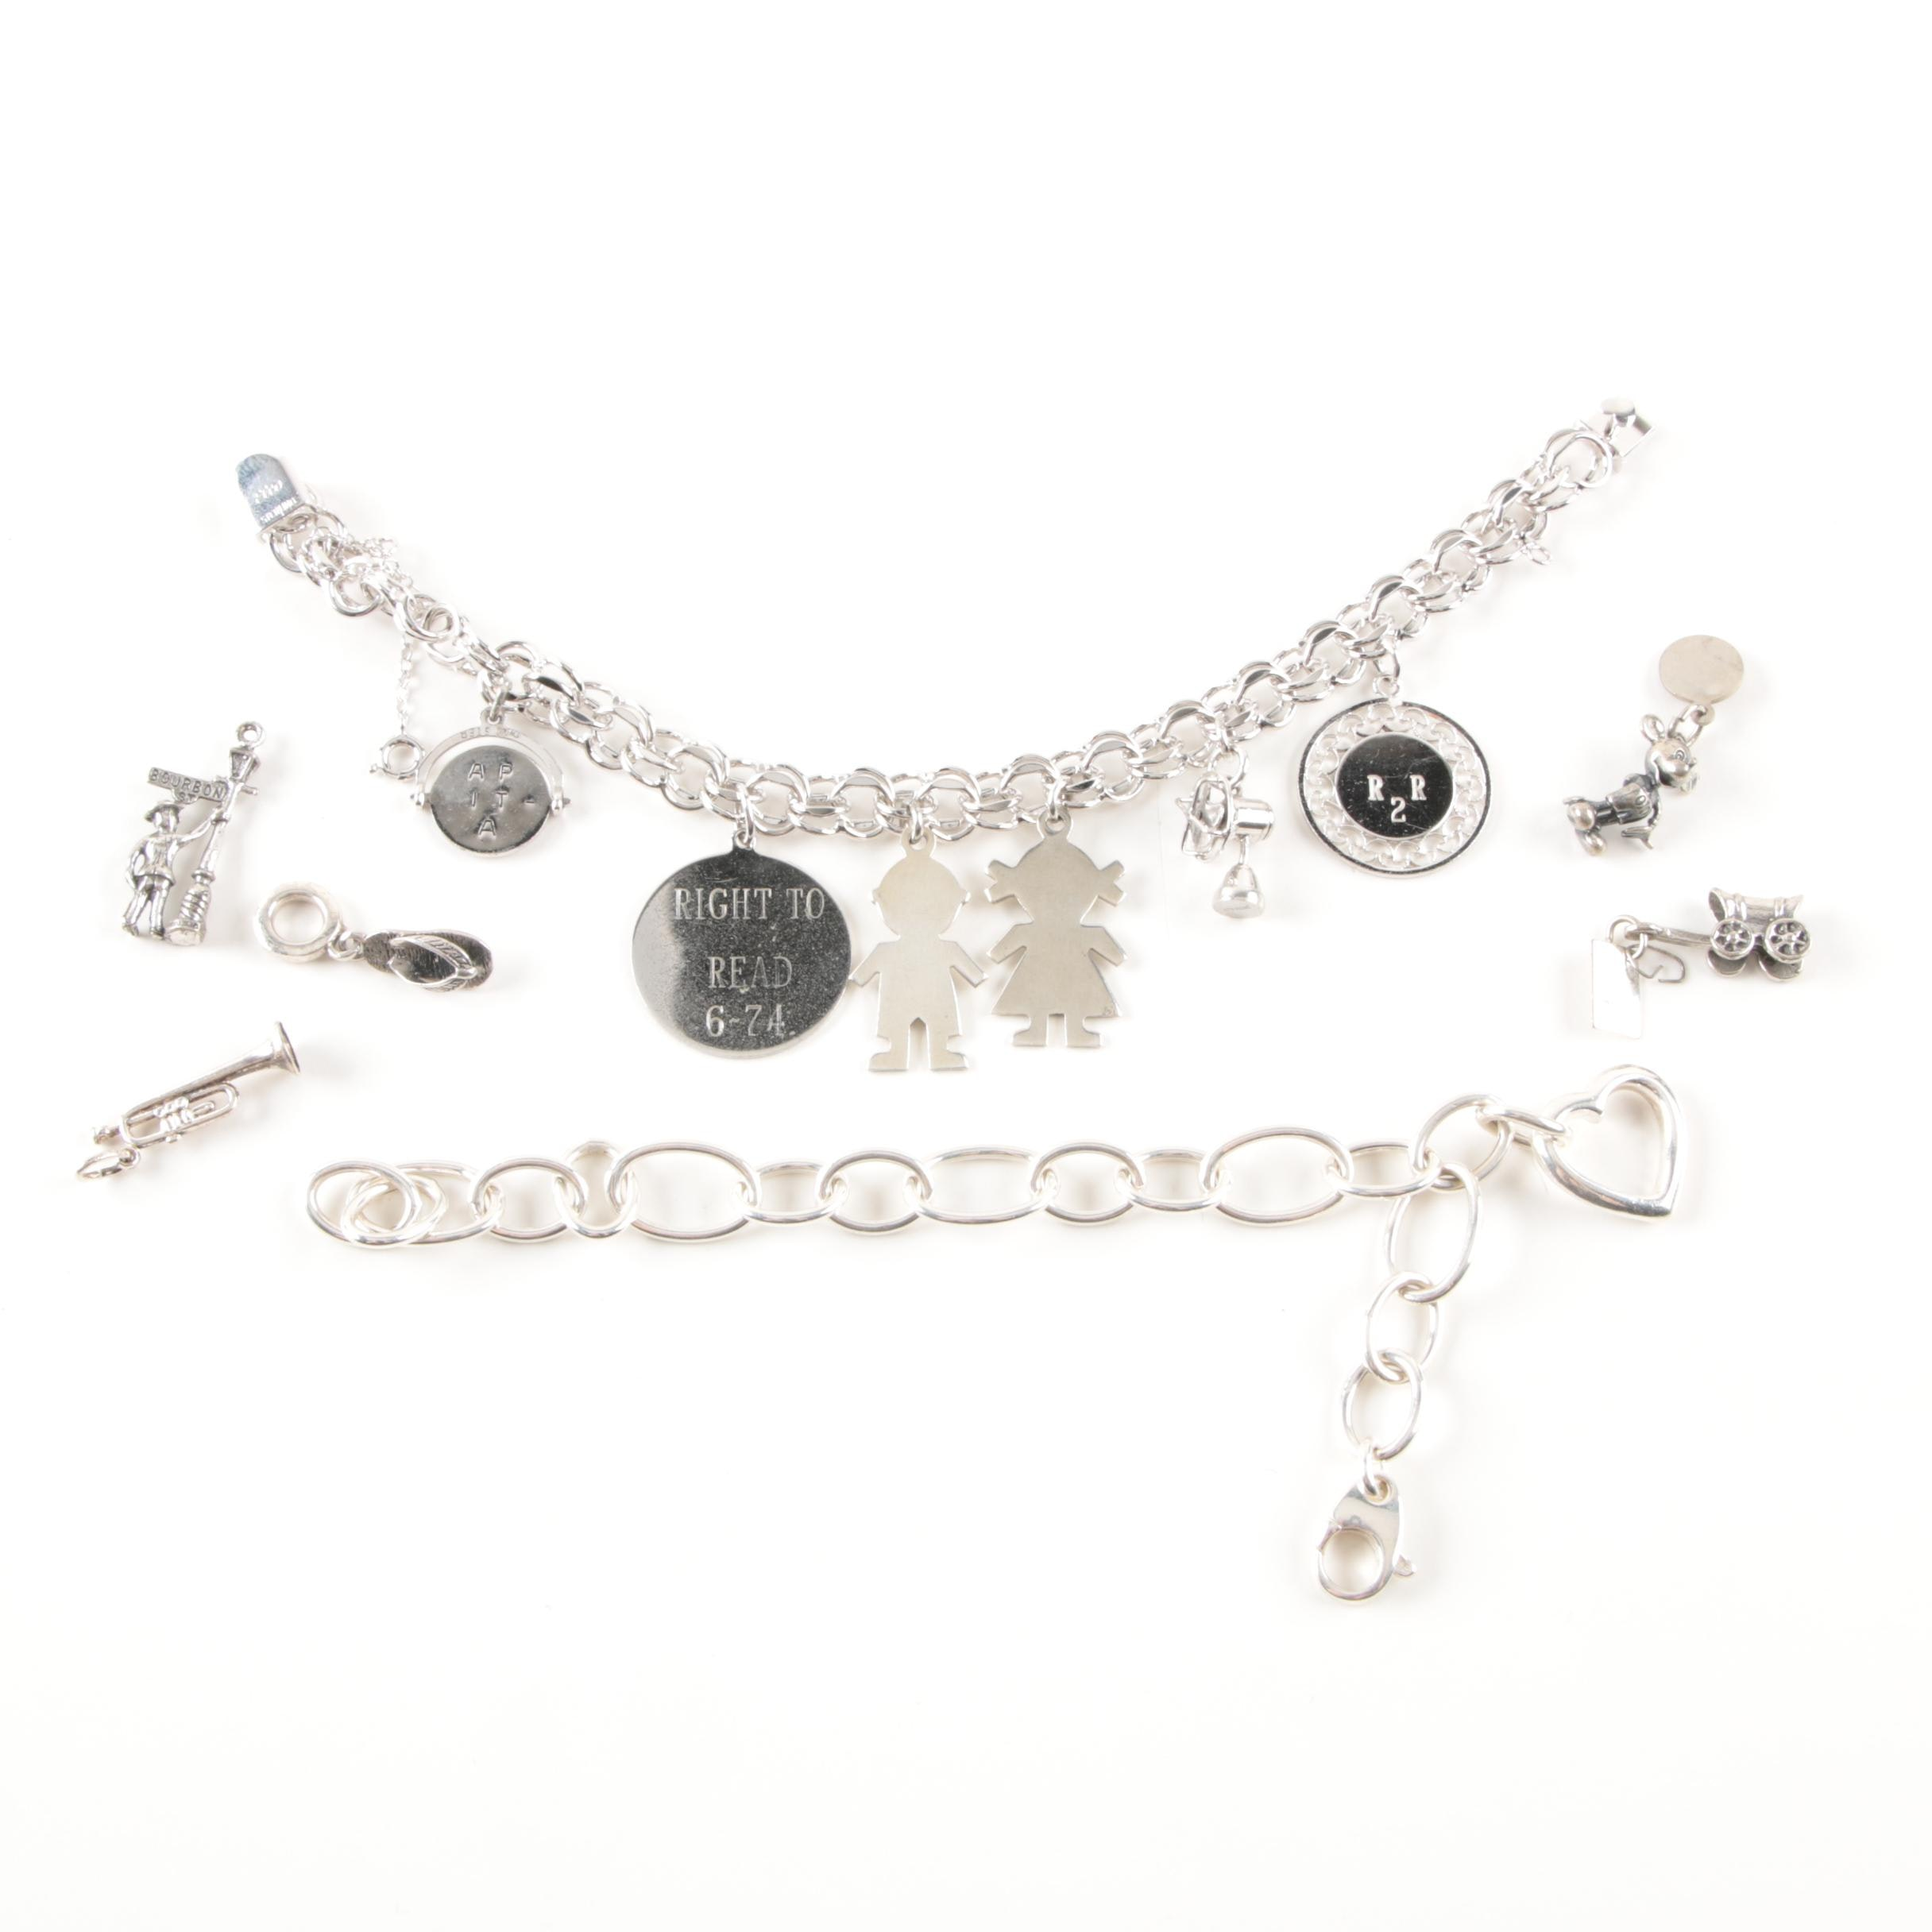 Assorted Sterling Silver Bracelets and Loose Sterling Silver Charms